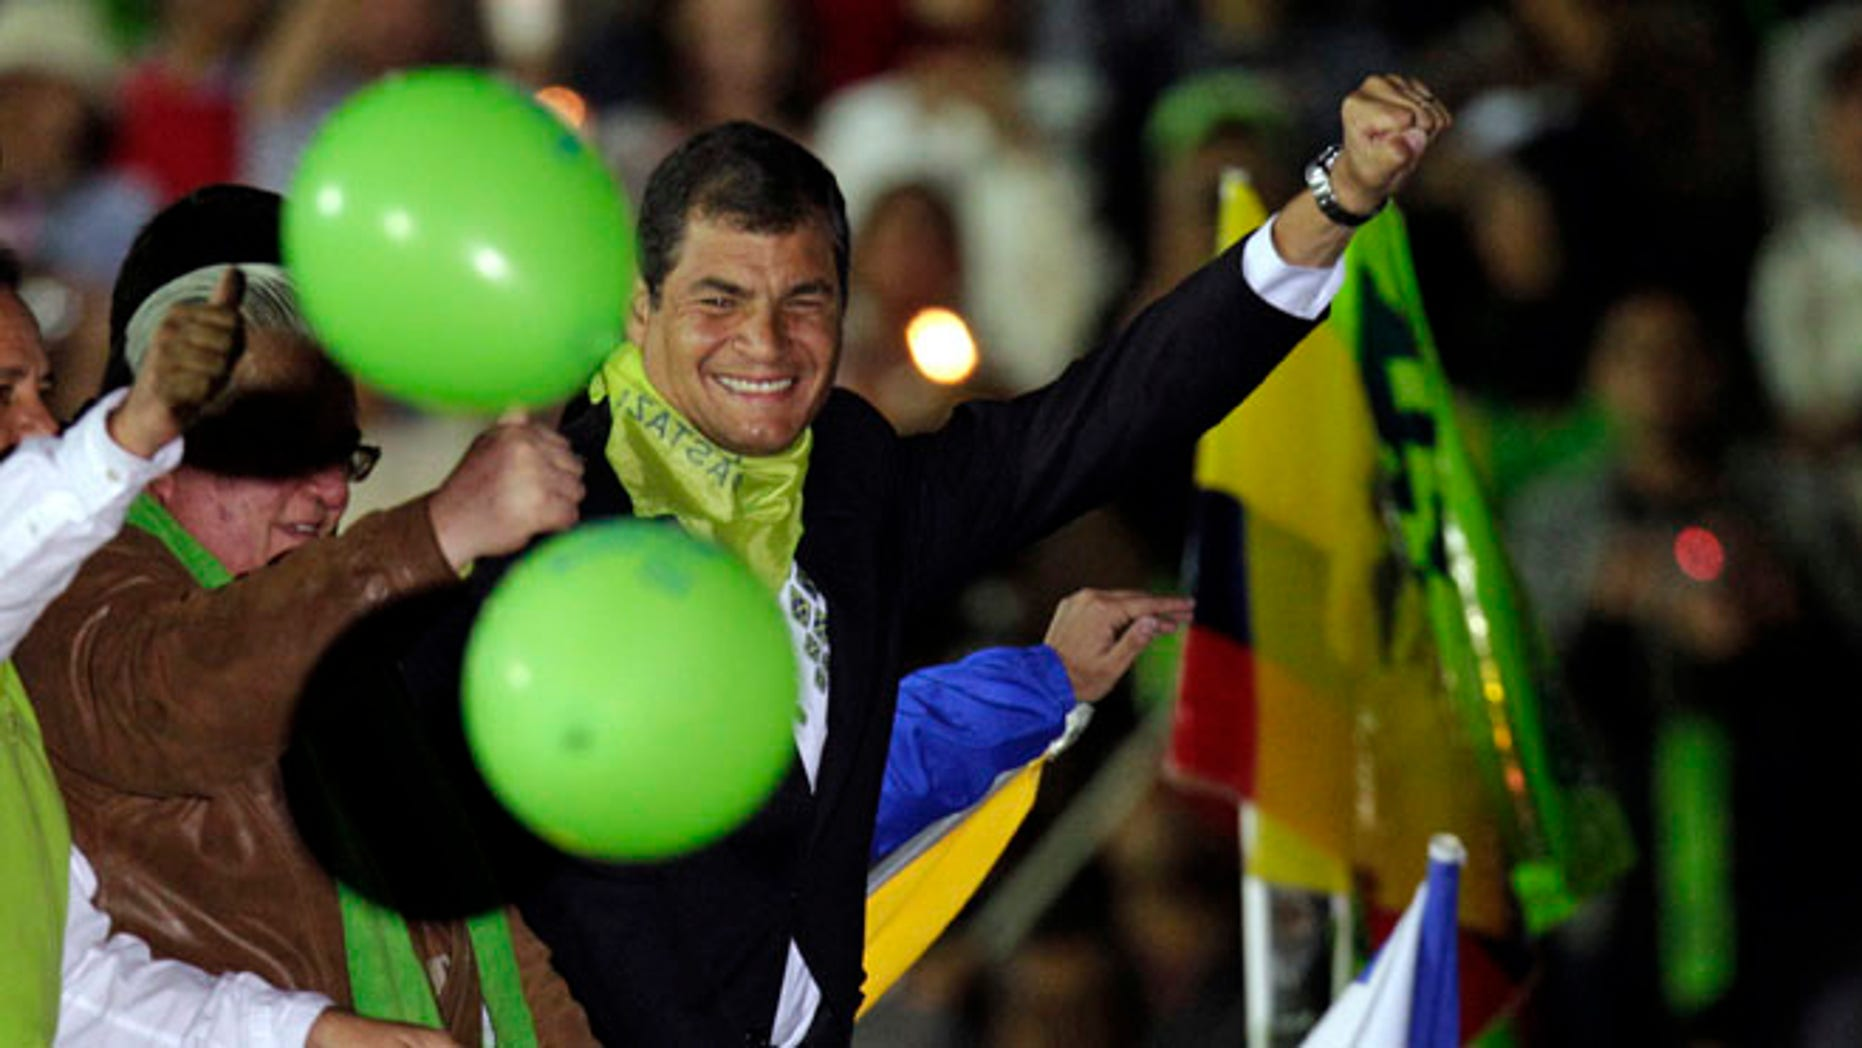 Ecuador's President Rafael Correa lifts his fist as he arrives atop a car to participate in a in event marking the fifth anniversary of his administration in Cuenca, Ecuador, Saturday, Jan. 14, 2012. (AP Photo/Dolores Ochoa)